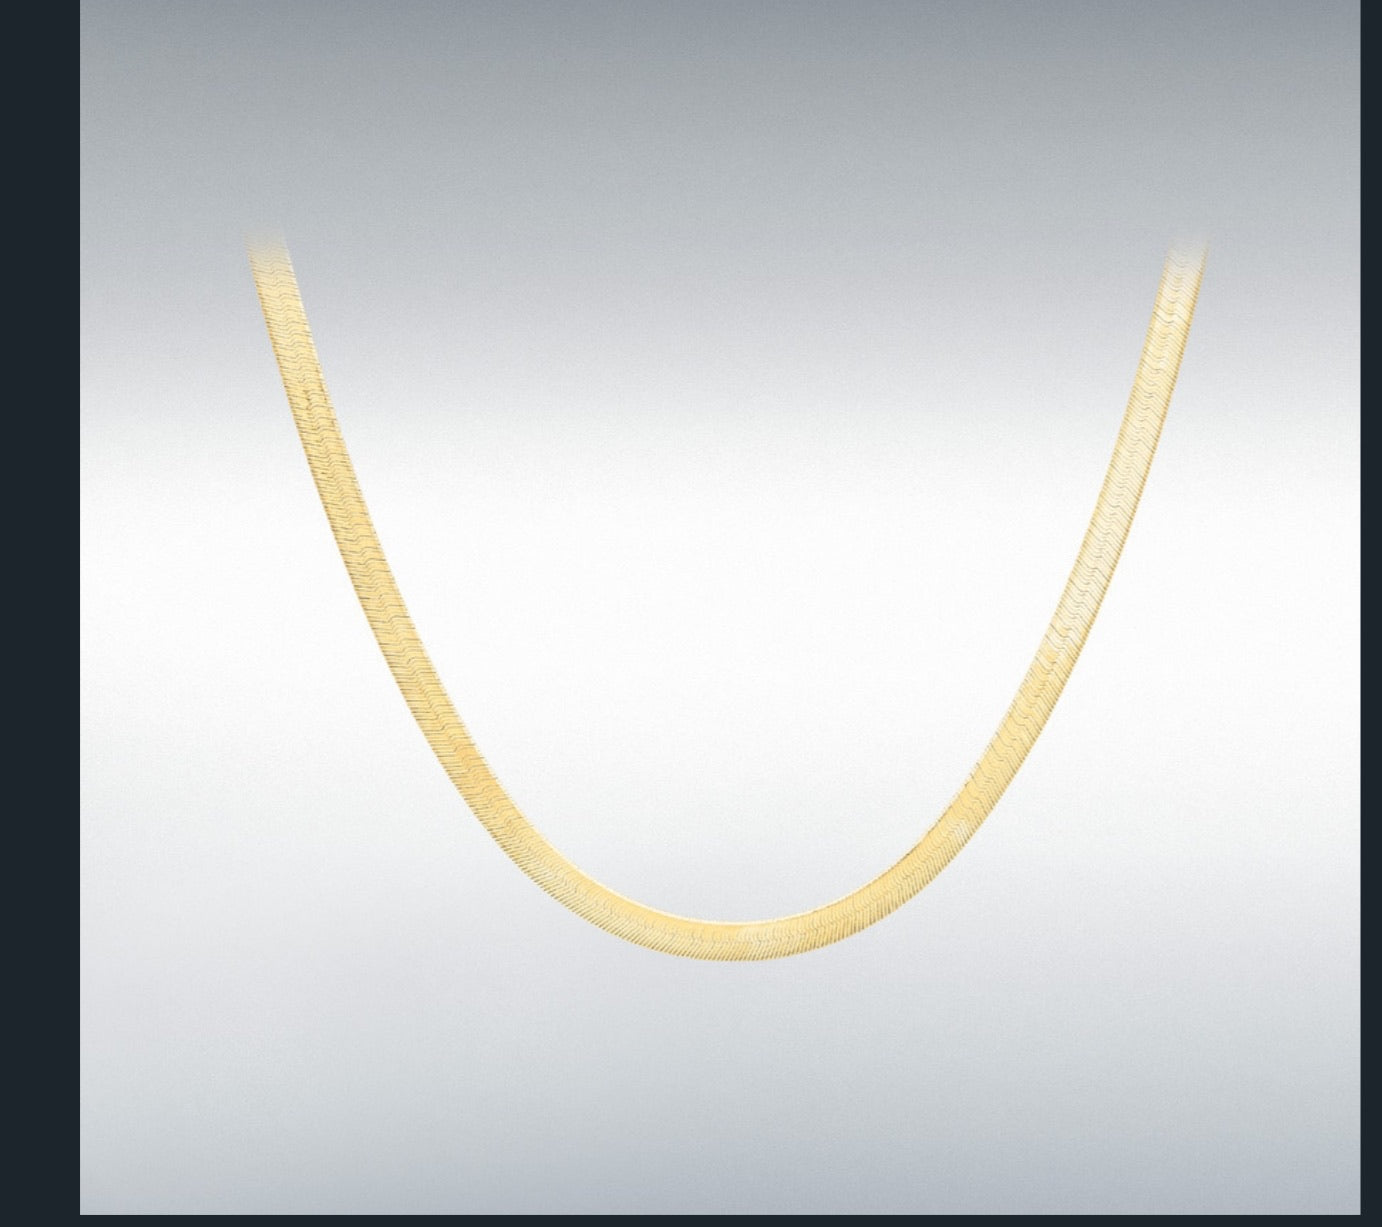 Flat Herringbone Gold Chain